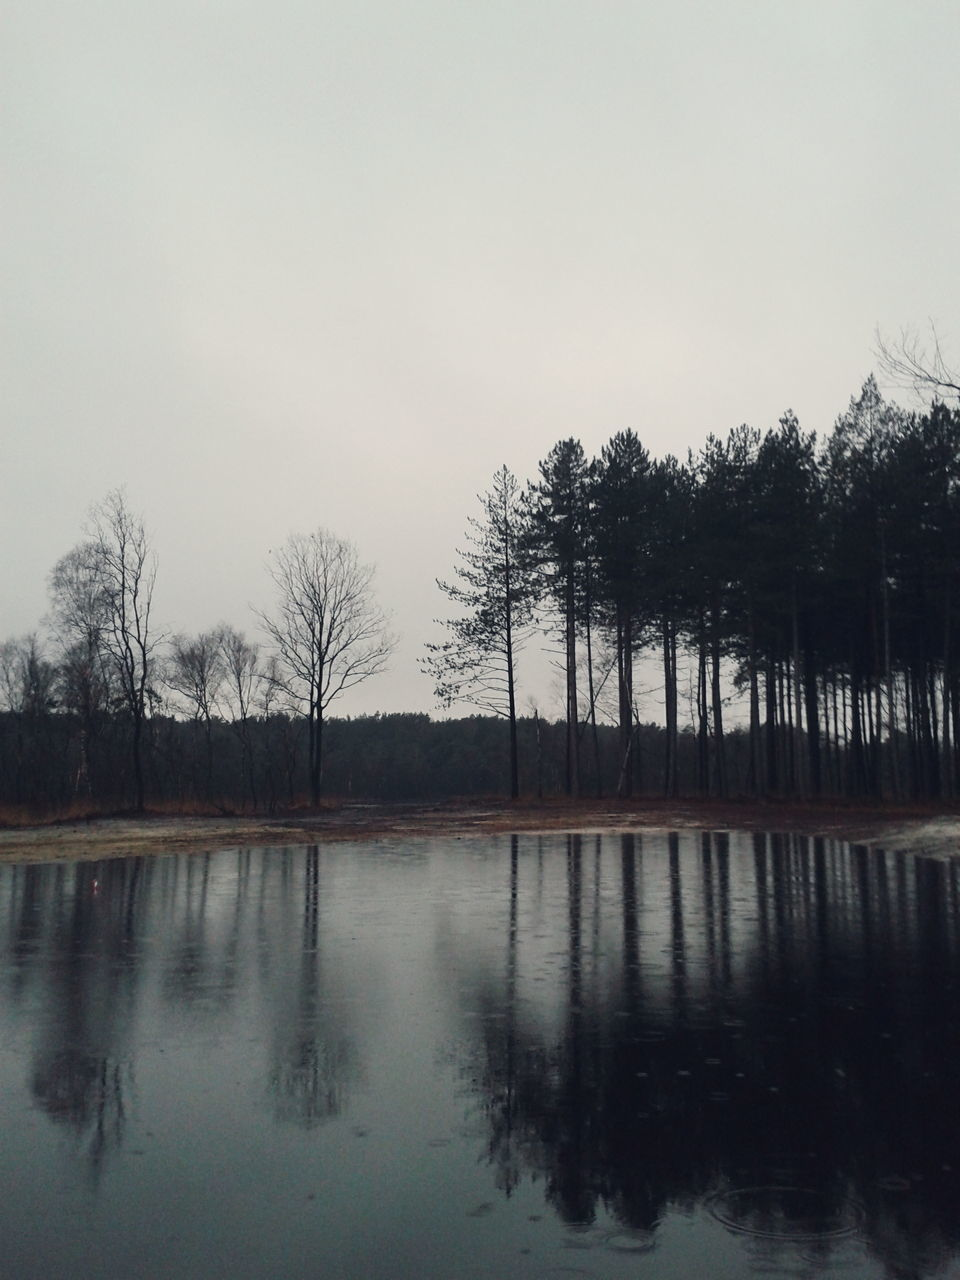 Reflection Of Trees On Lake Against Clear Sky